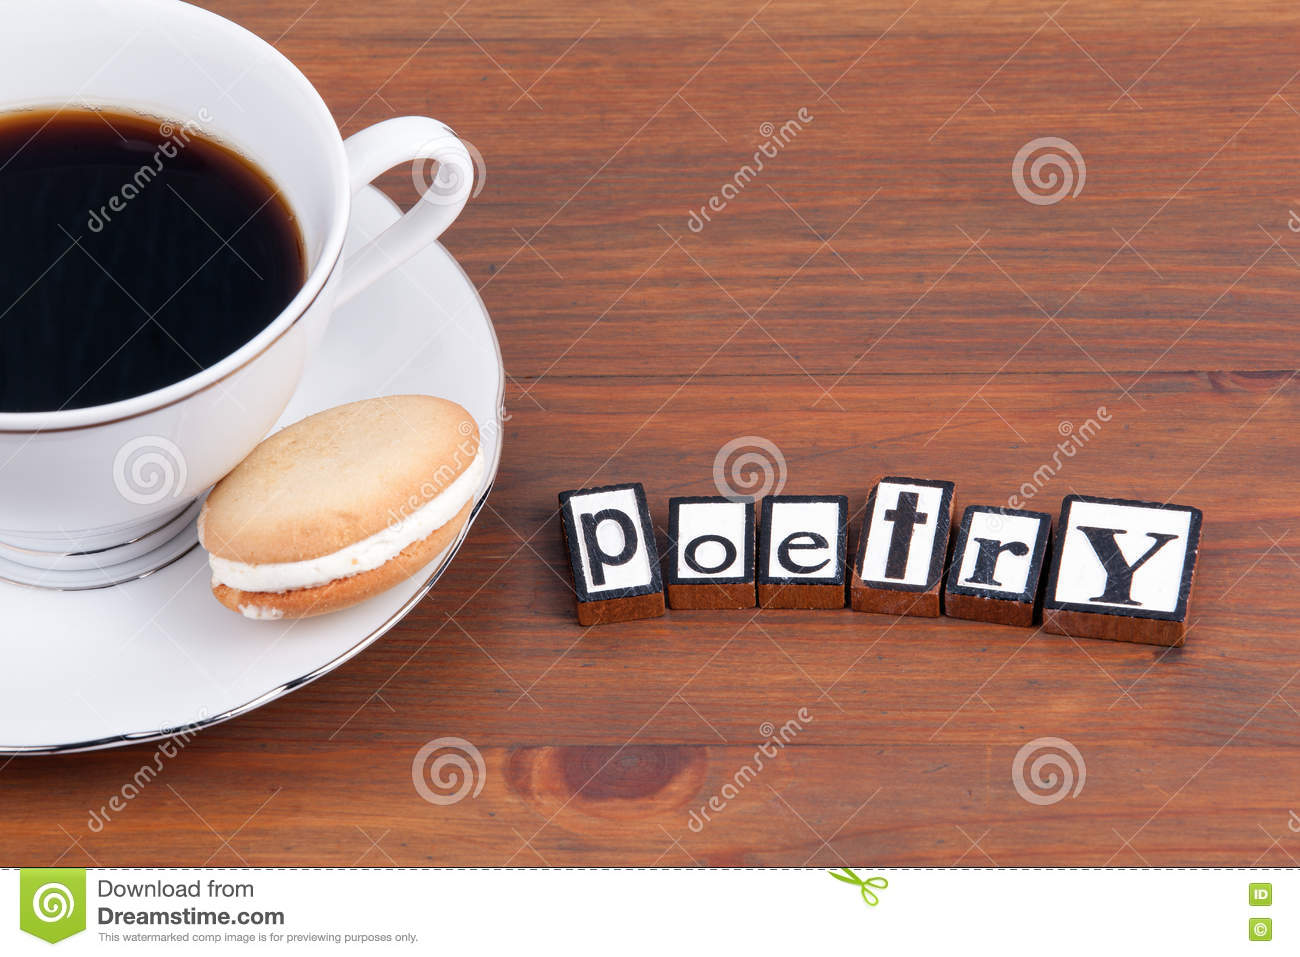 Poetry On Wooden Table Coffee Mug Cookie Stock Photo